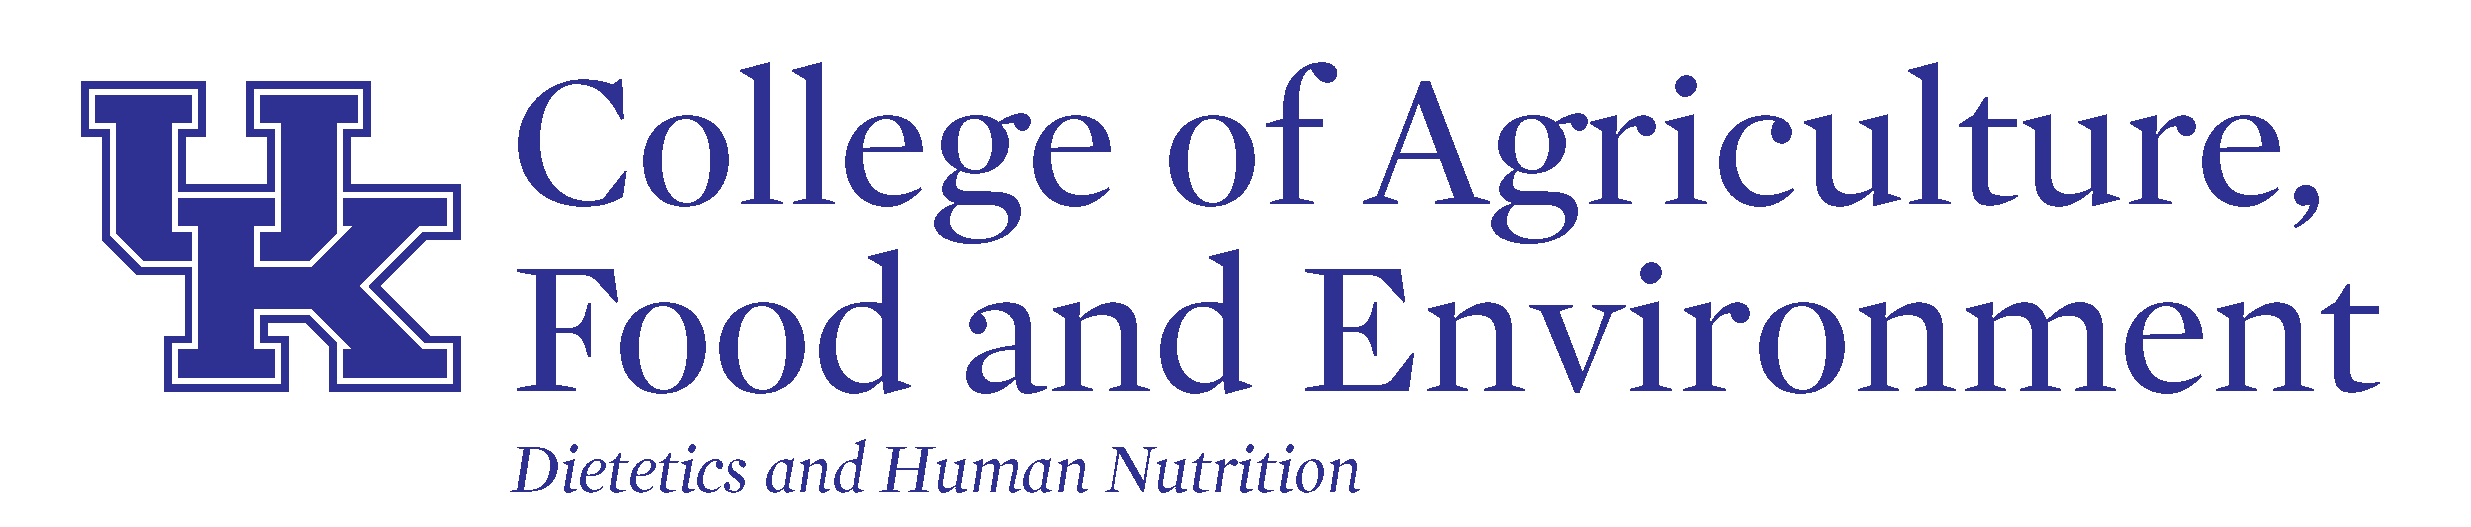 University of Kentucky department of Dietetics and Human Nutrition logo